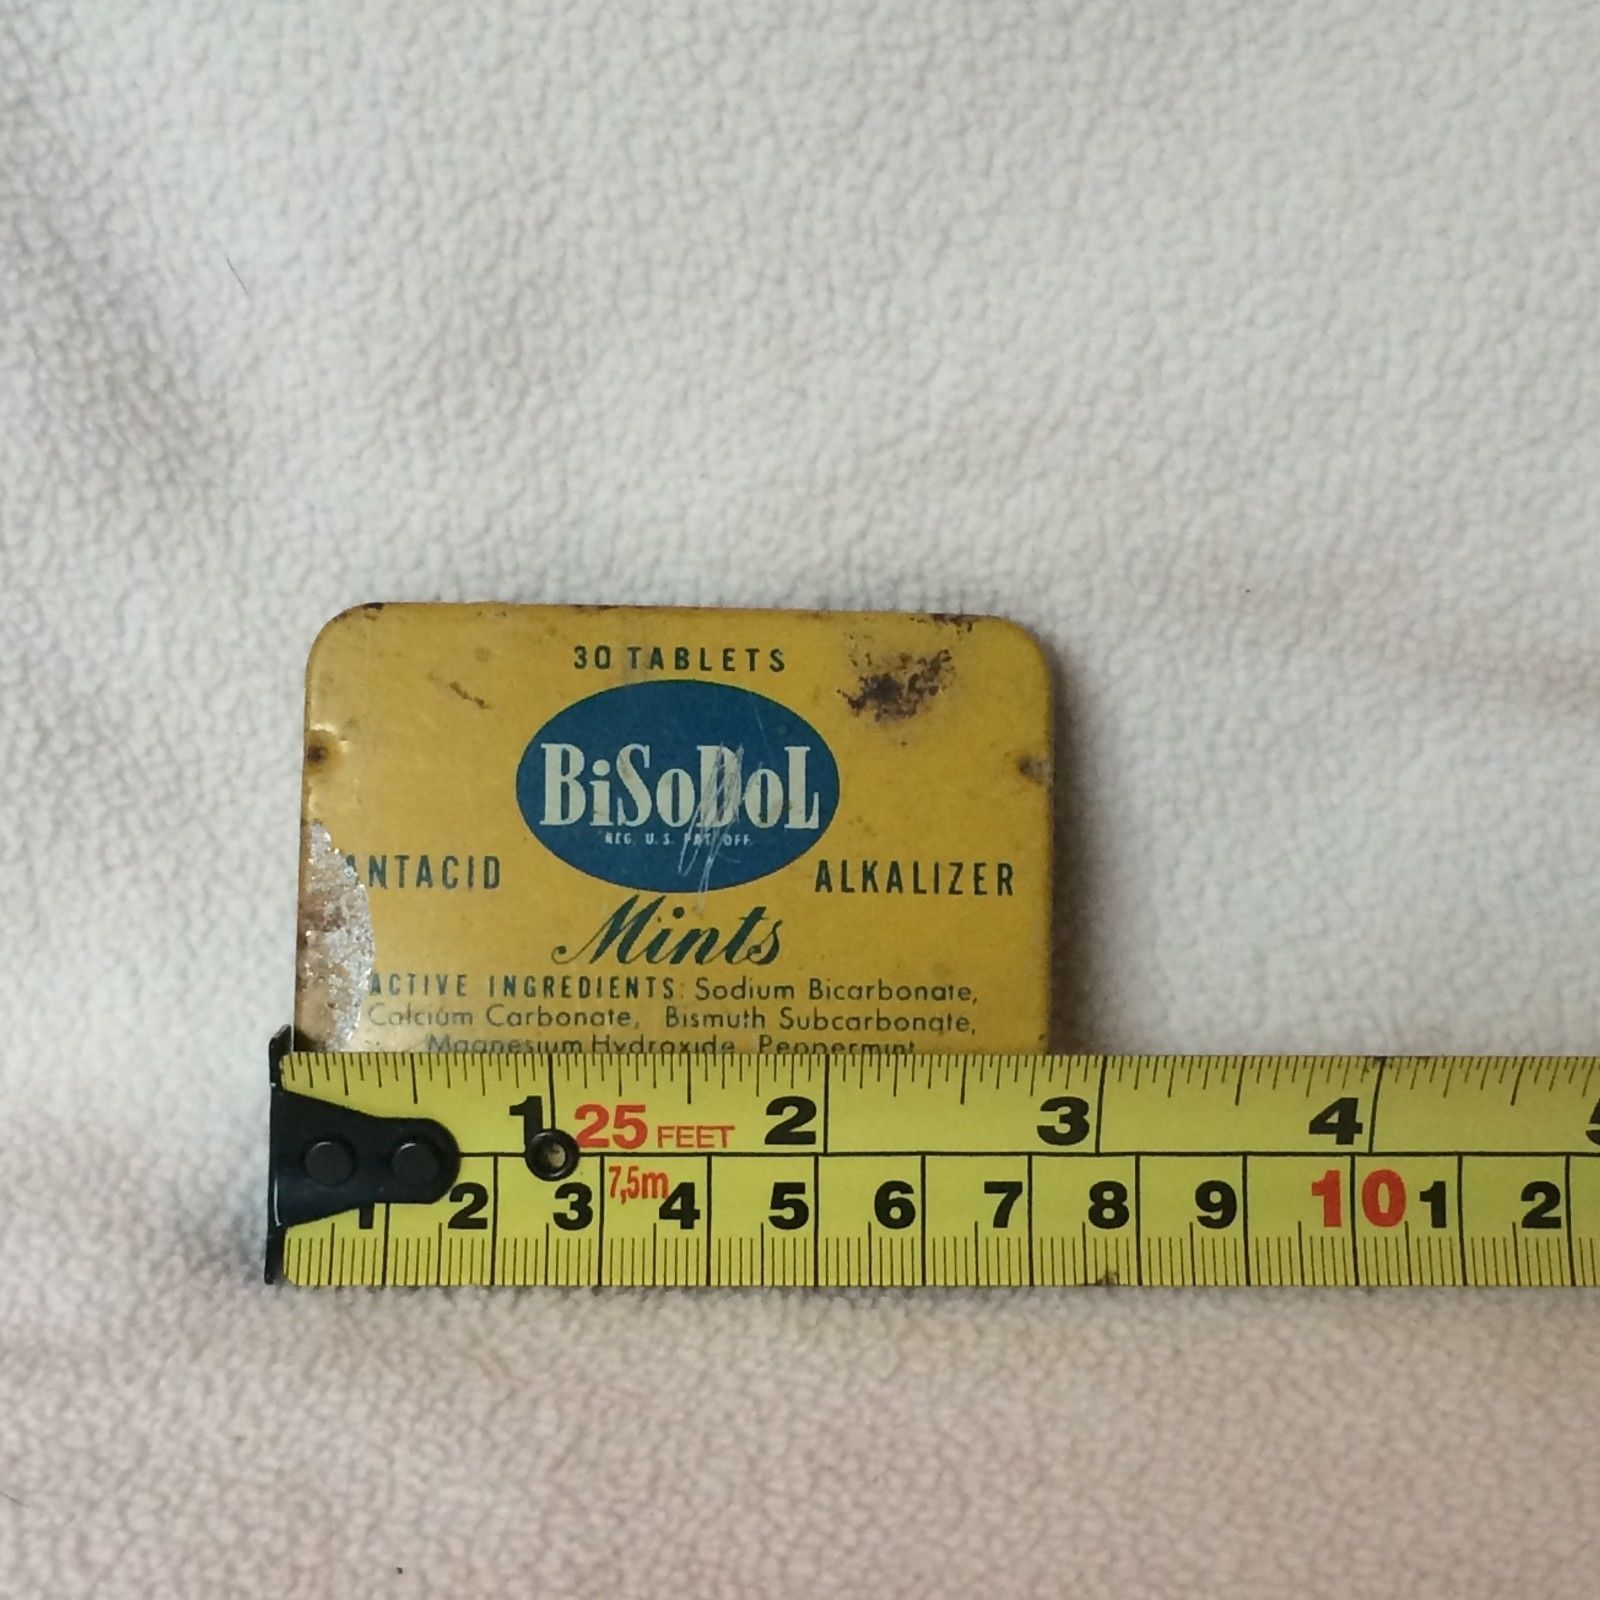 Vintage BiSoDol Mints Empty Tin Antacid 30 tablets New York, NY Yellow Blue